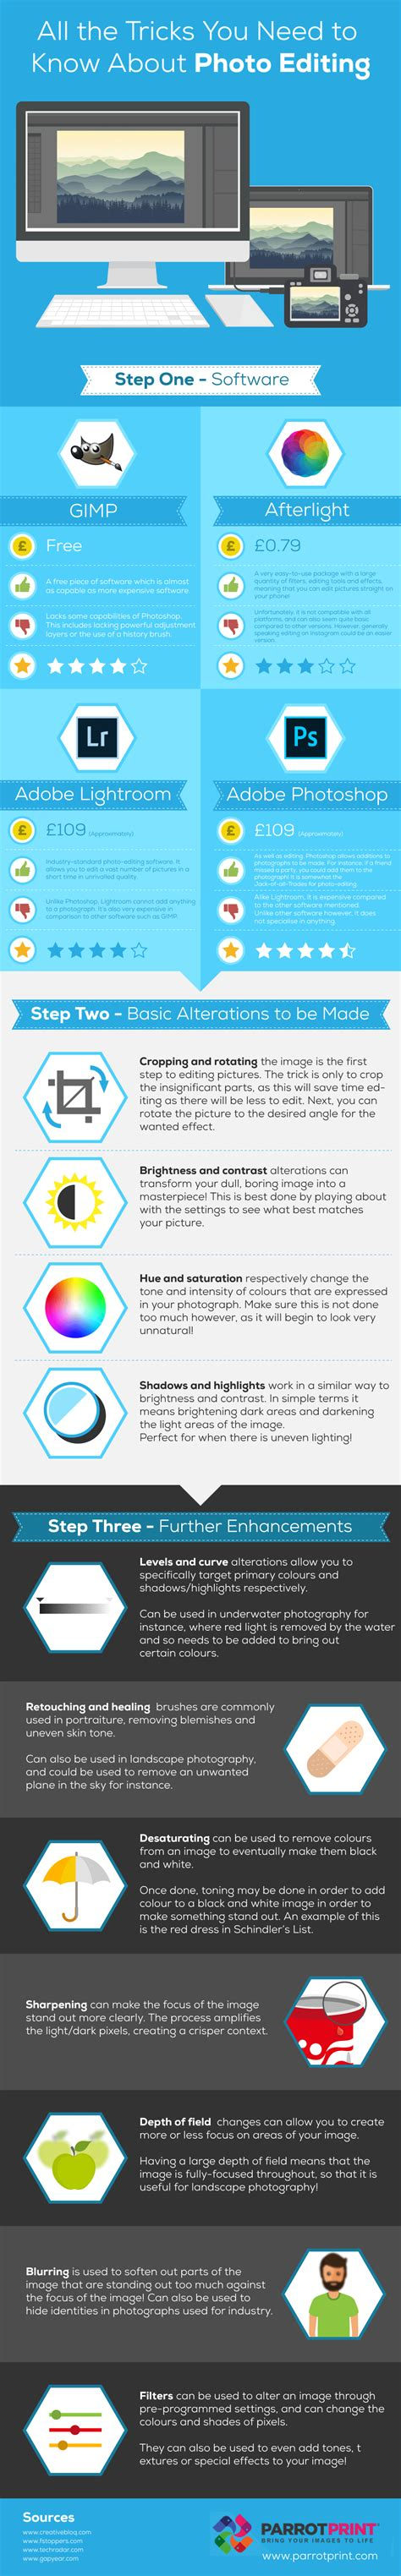 designtaxi editor infographic all the tricks you need to know about photo